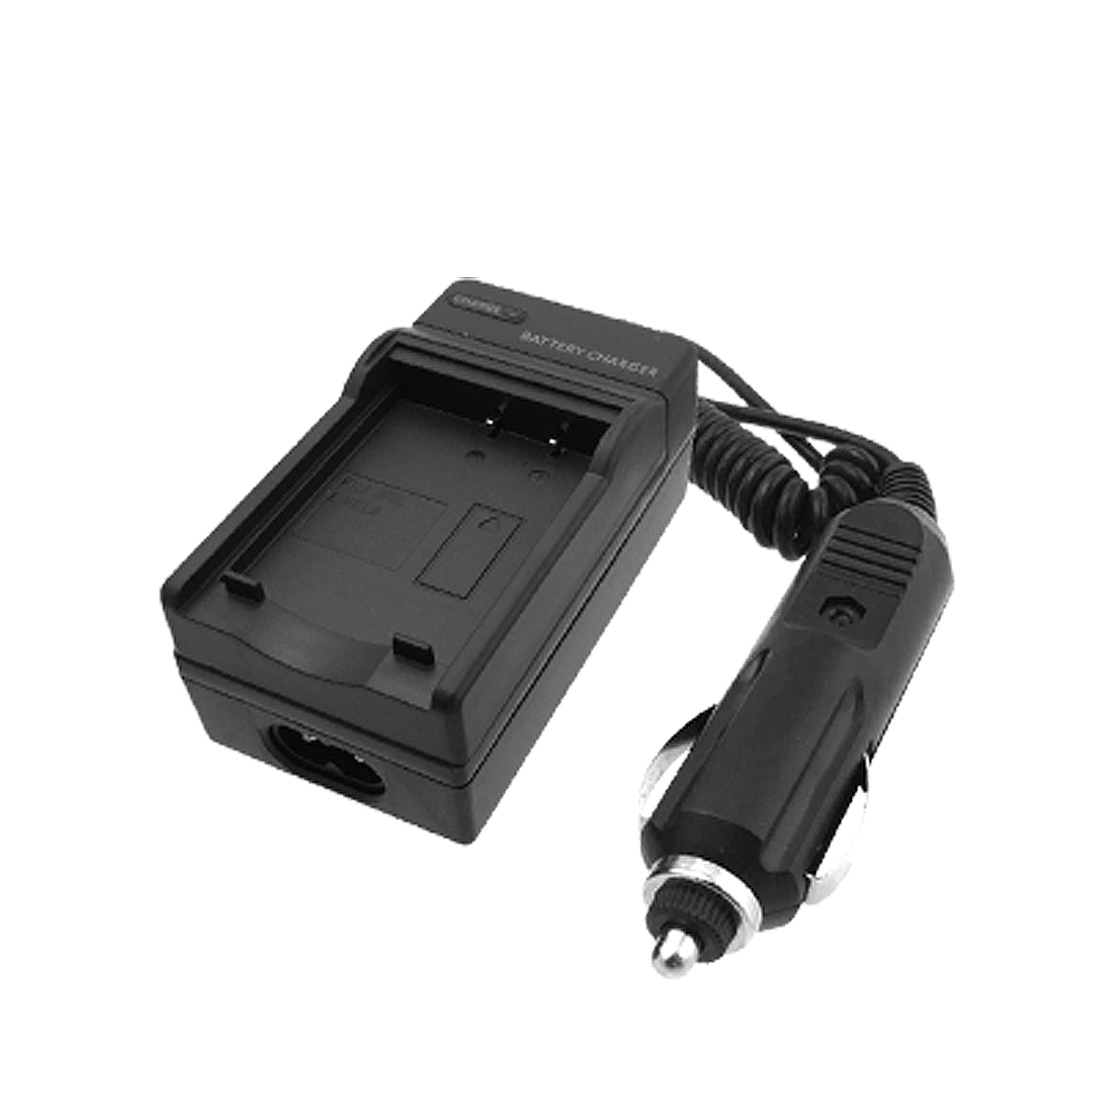 ENEL8 EN-EL8 Digital Camera Battery Charger for Nikon Coolpix P1 / P2 / S1